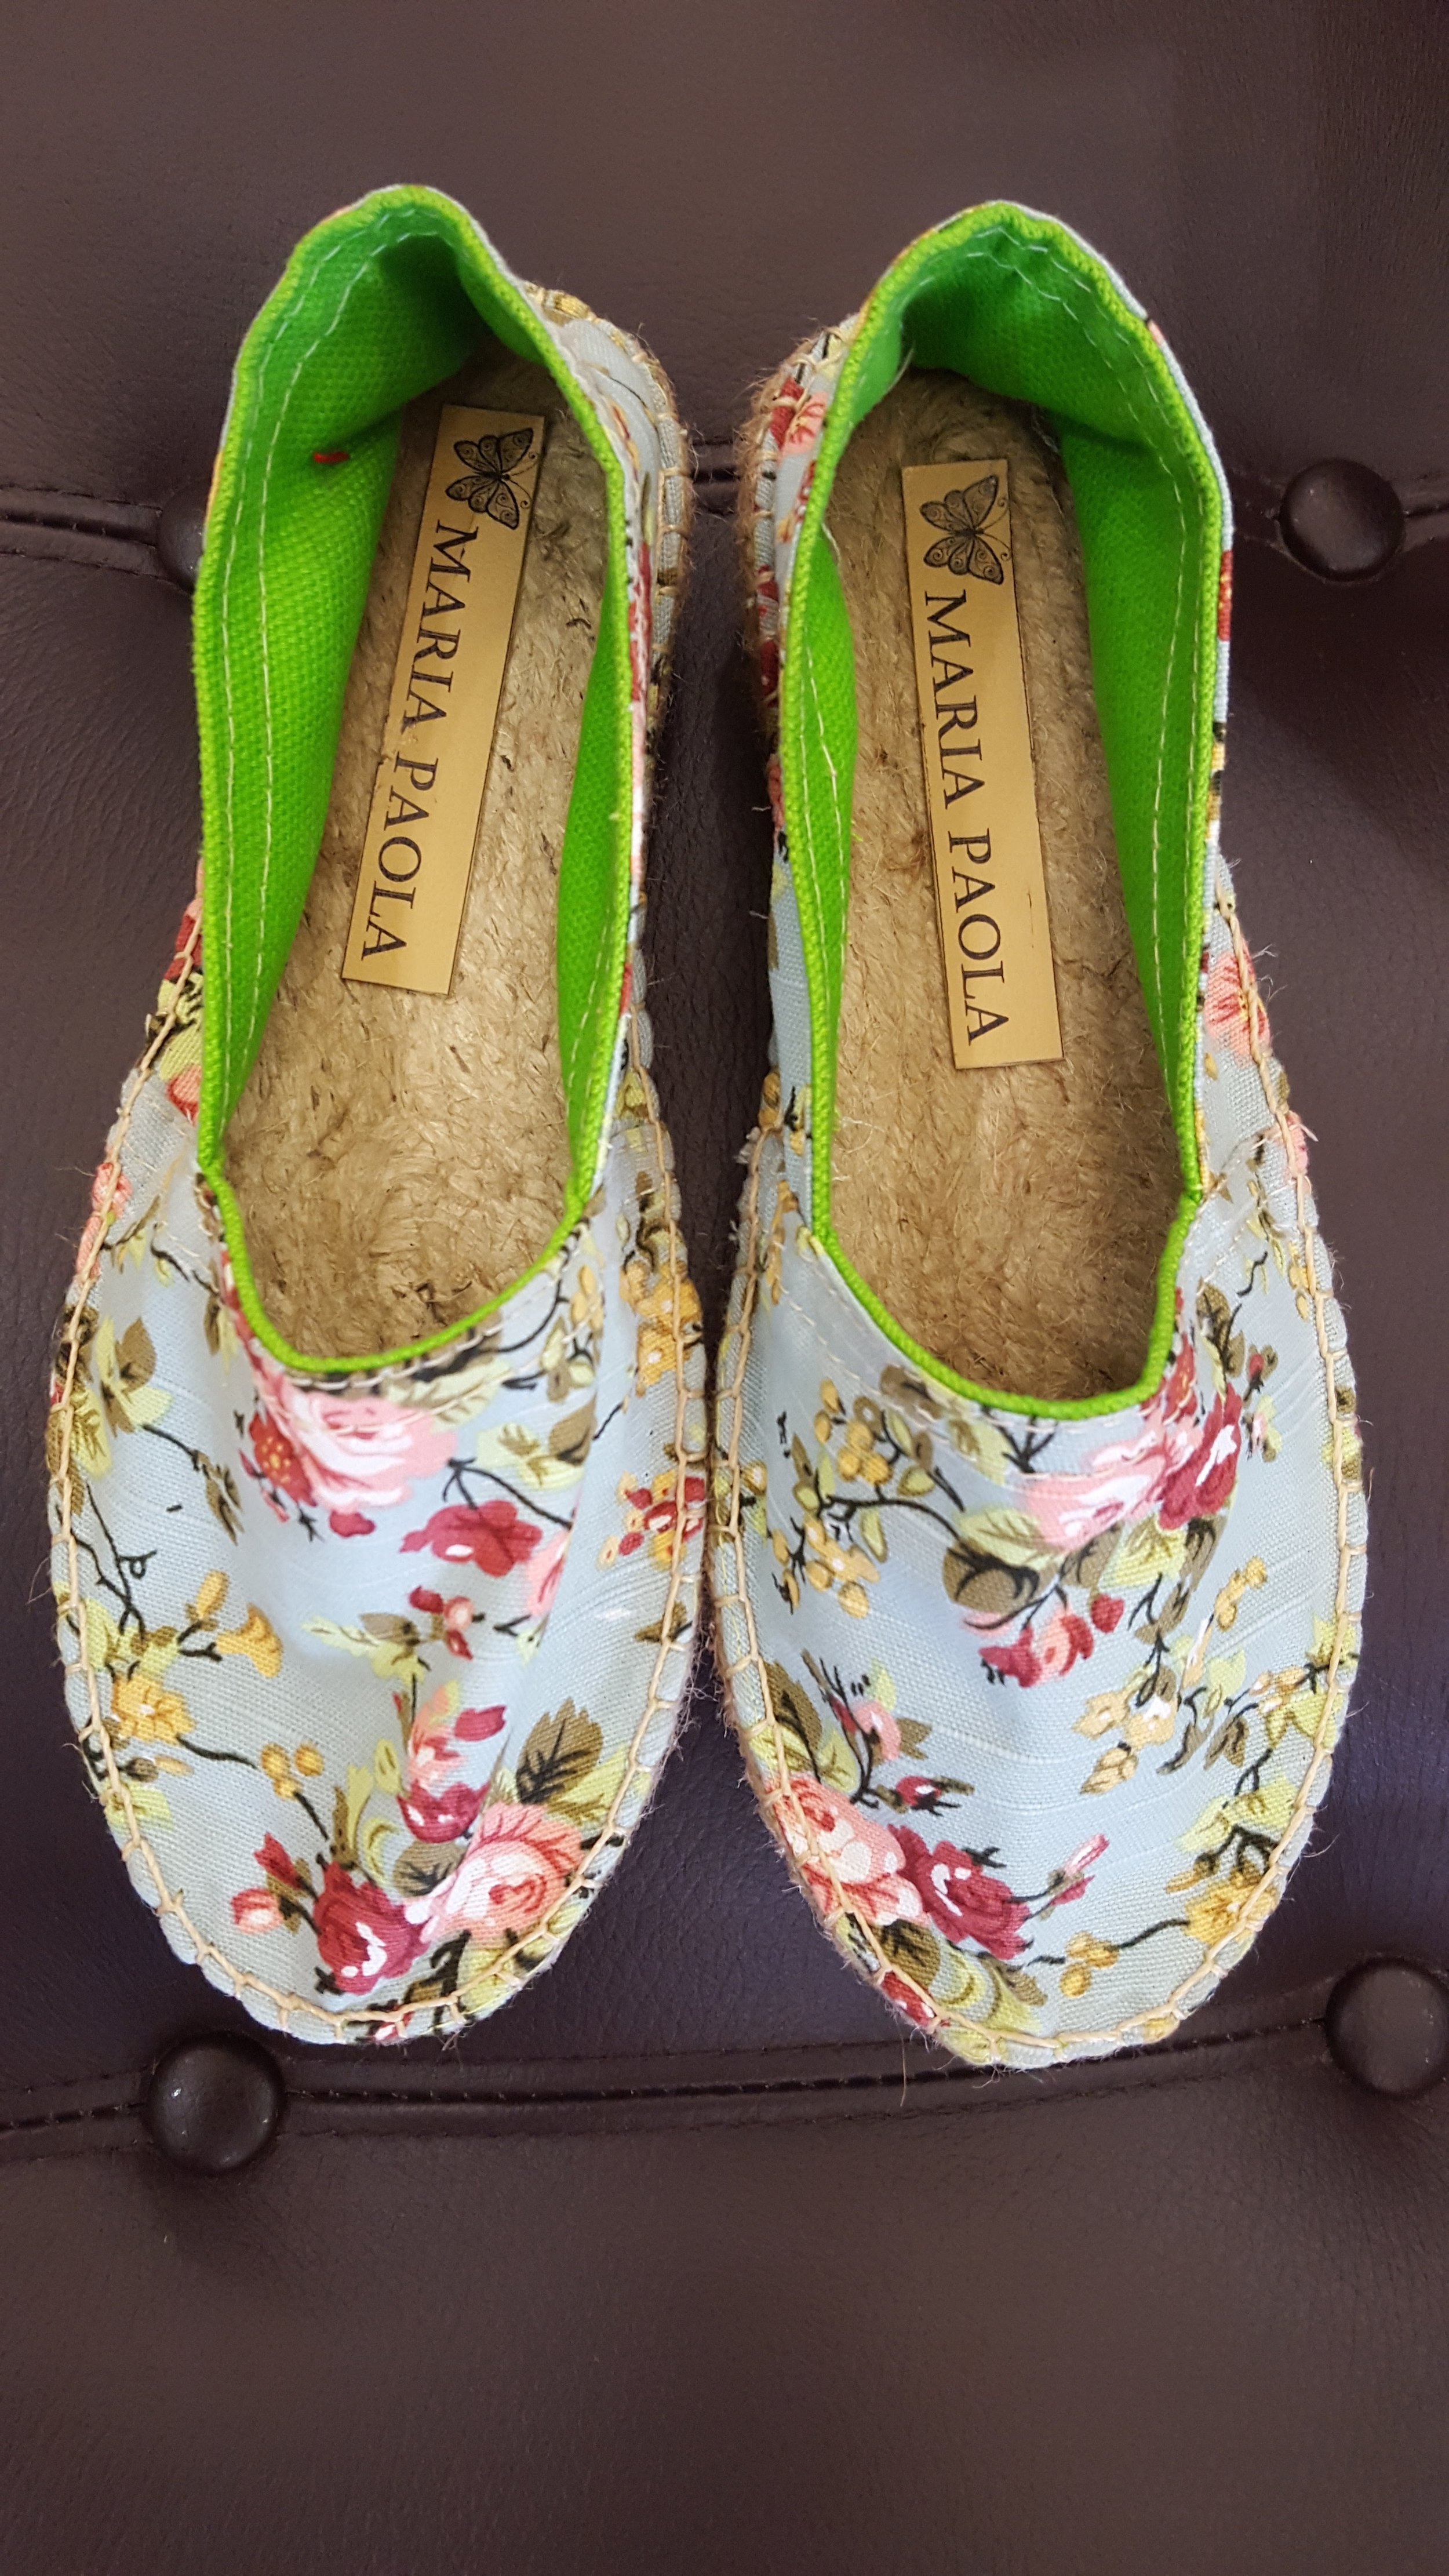 Floral Espadrilles_Pink and Green_Maria Paola.jpg